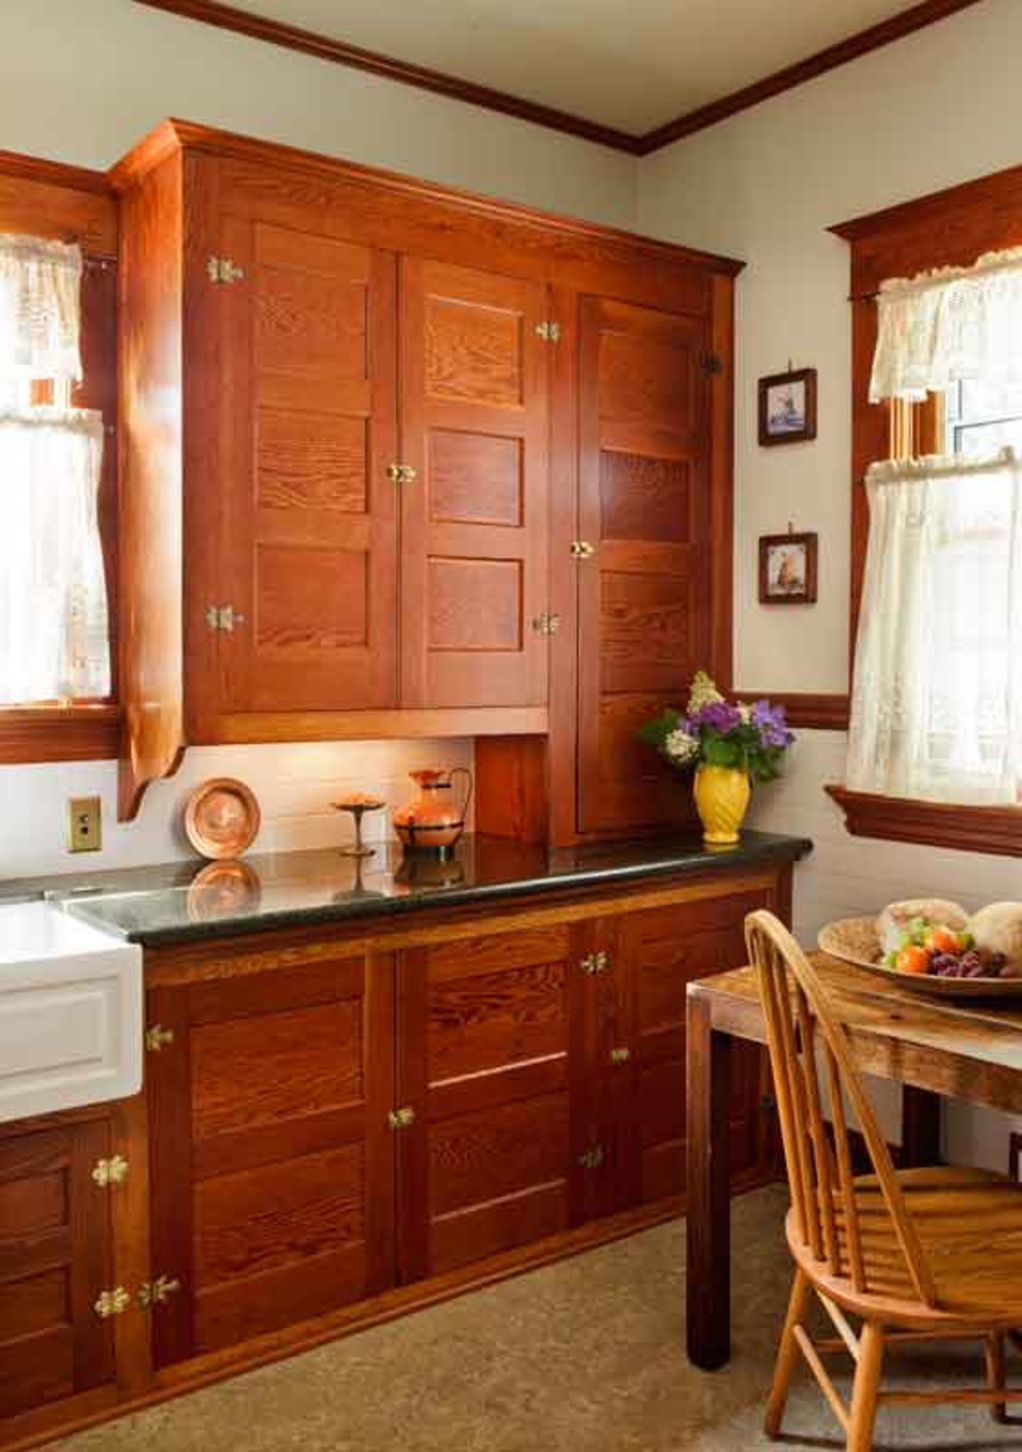 Restored Cabinets In A Renovated Craftsman Kitchen Old House Journal Magazine Bungalow Kitchen Vintage Kitchen Cabinets Kitchen Cabinet Styles